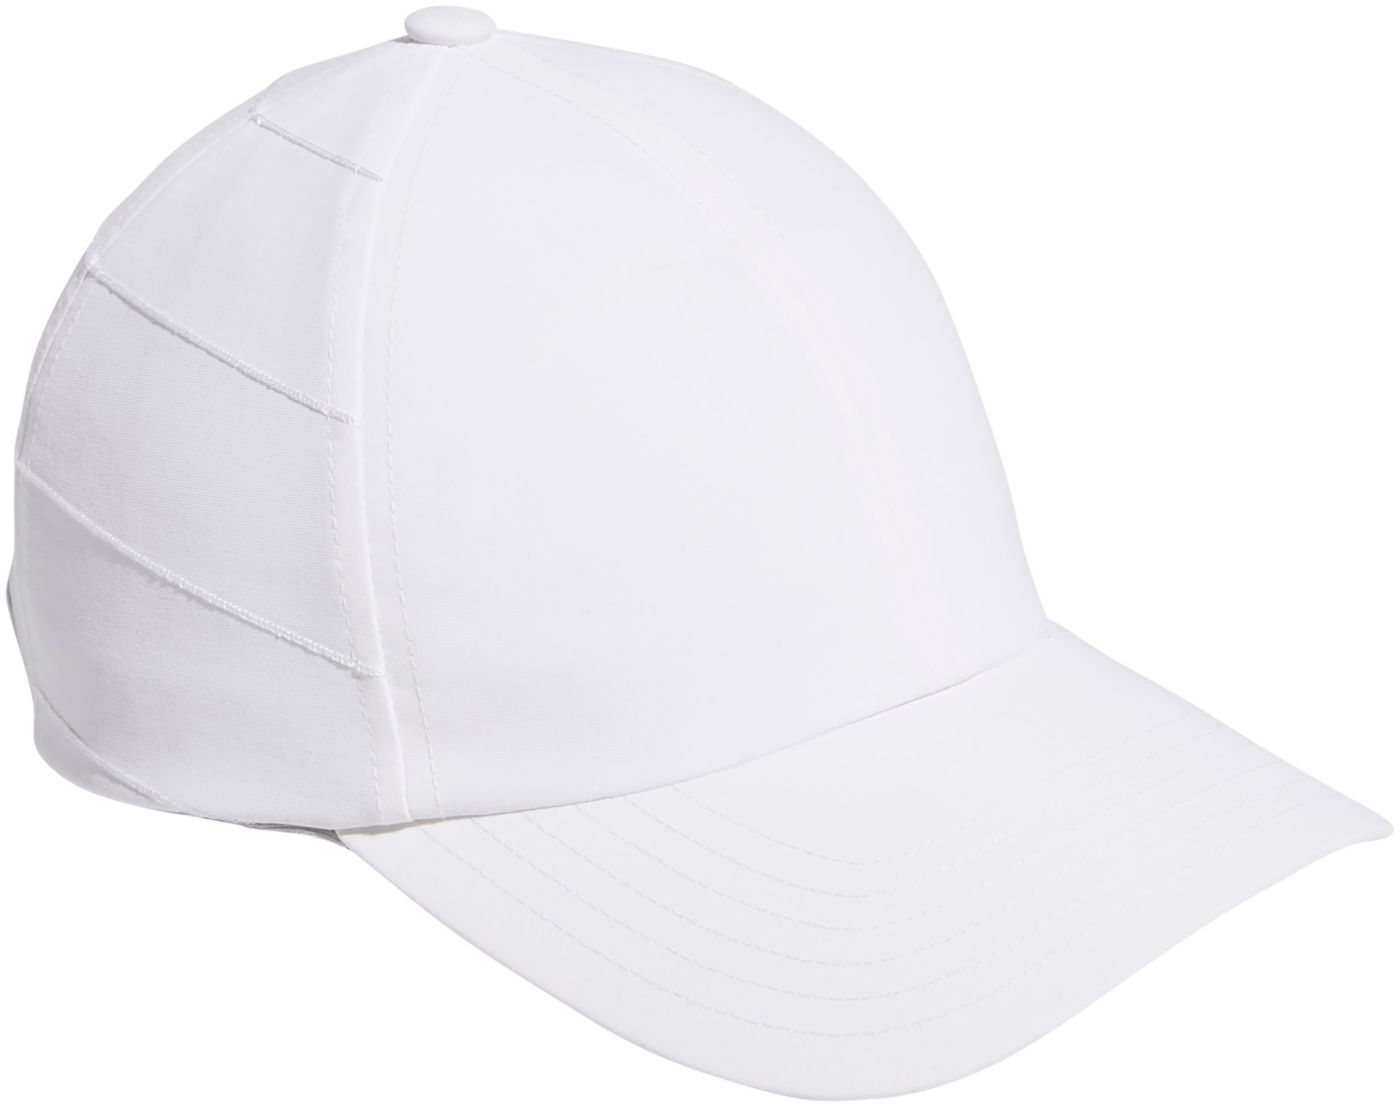 adidas Women's Jersey-Lined Stitched Golf Hat